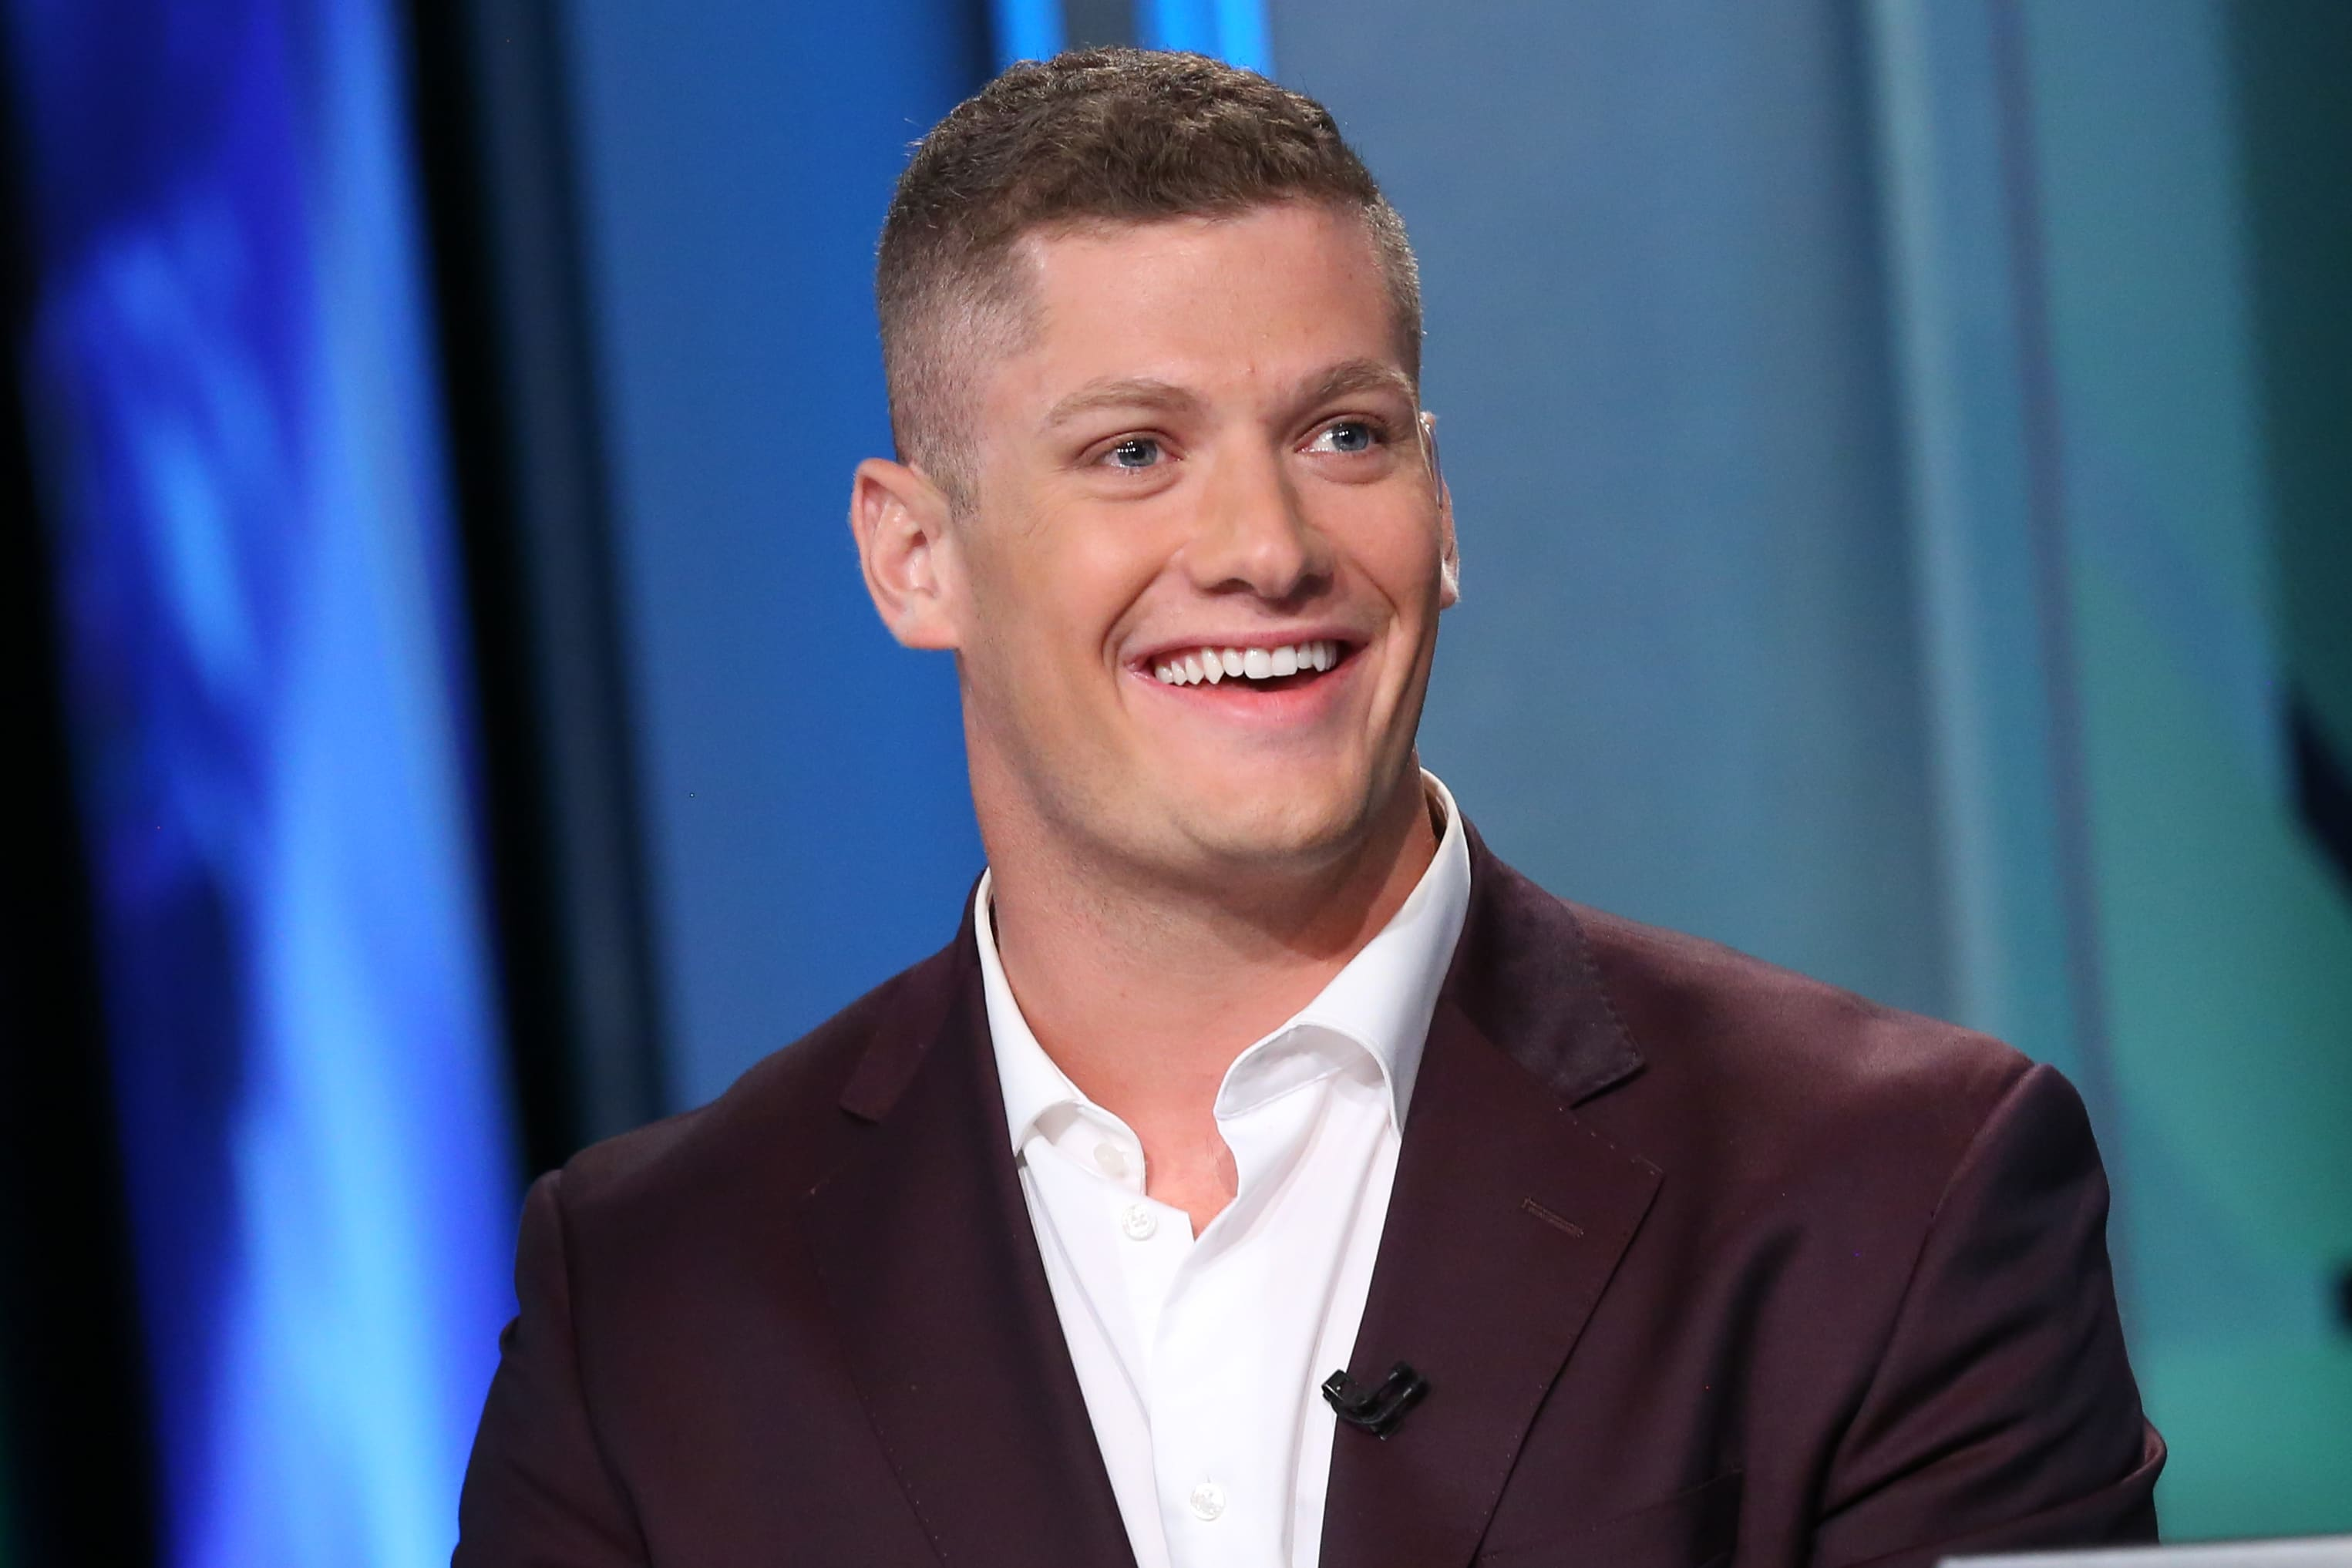 Nfl Player Carl Nassib S Simple Rules For Saving Money